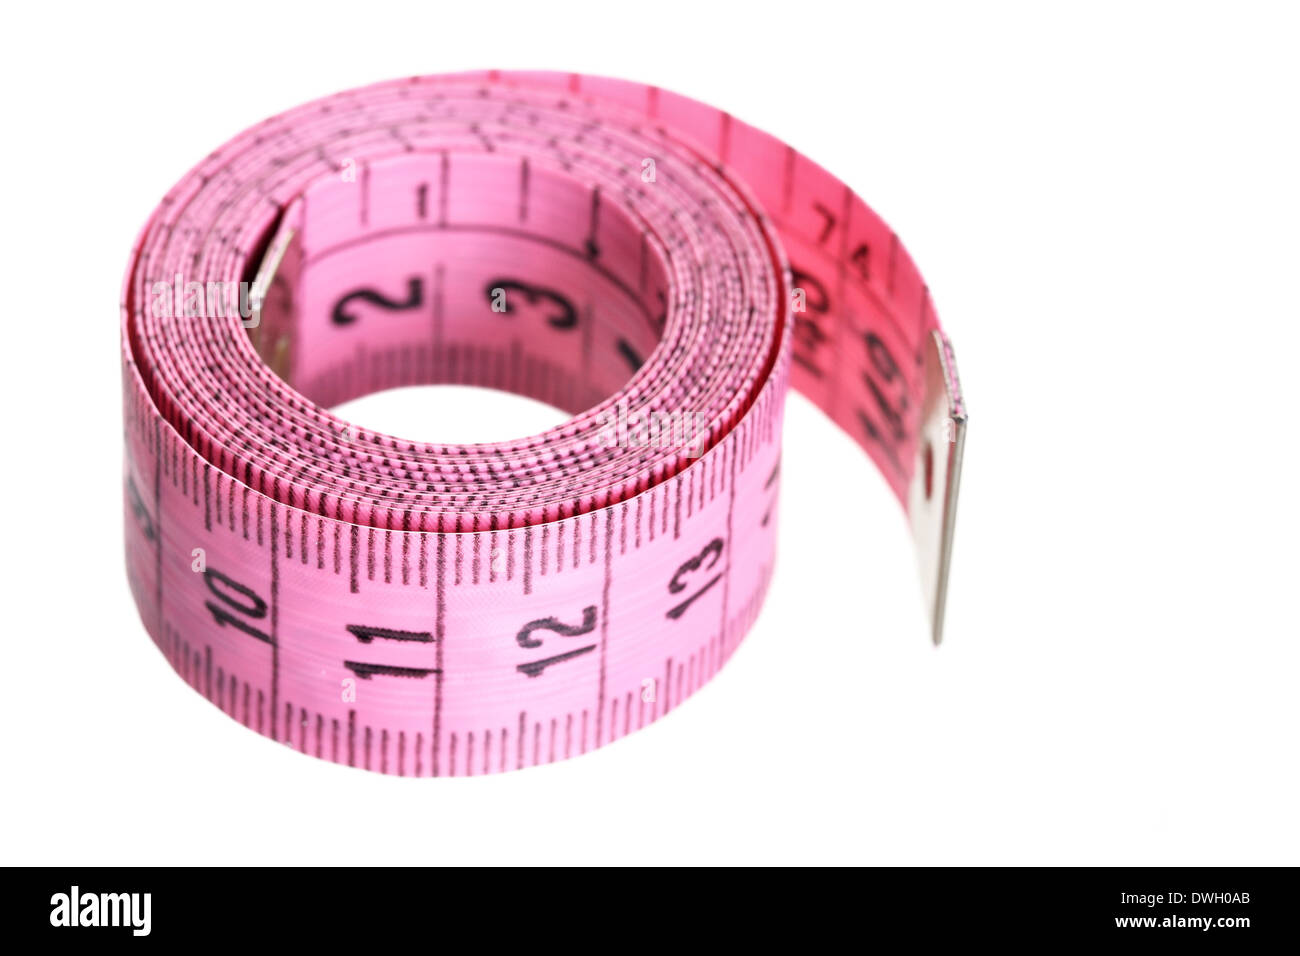 Pink measuring tape isolated over white background - Stock Image